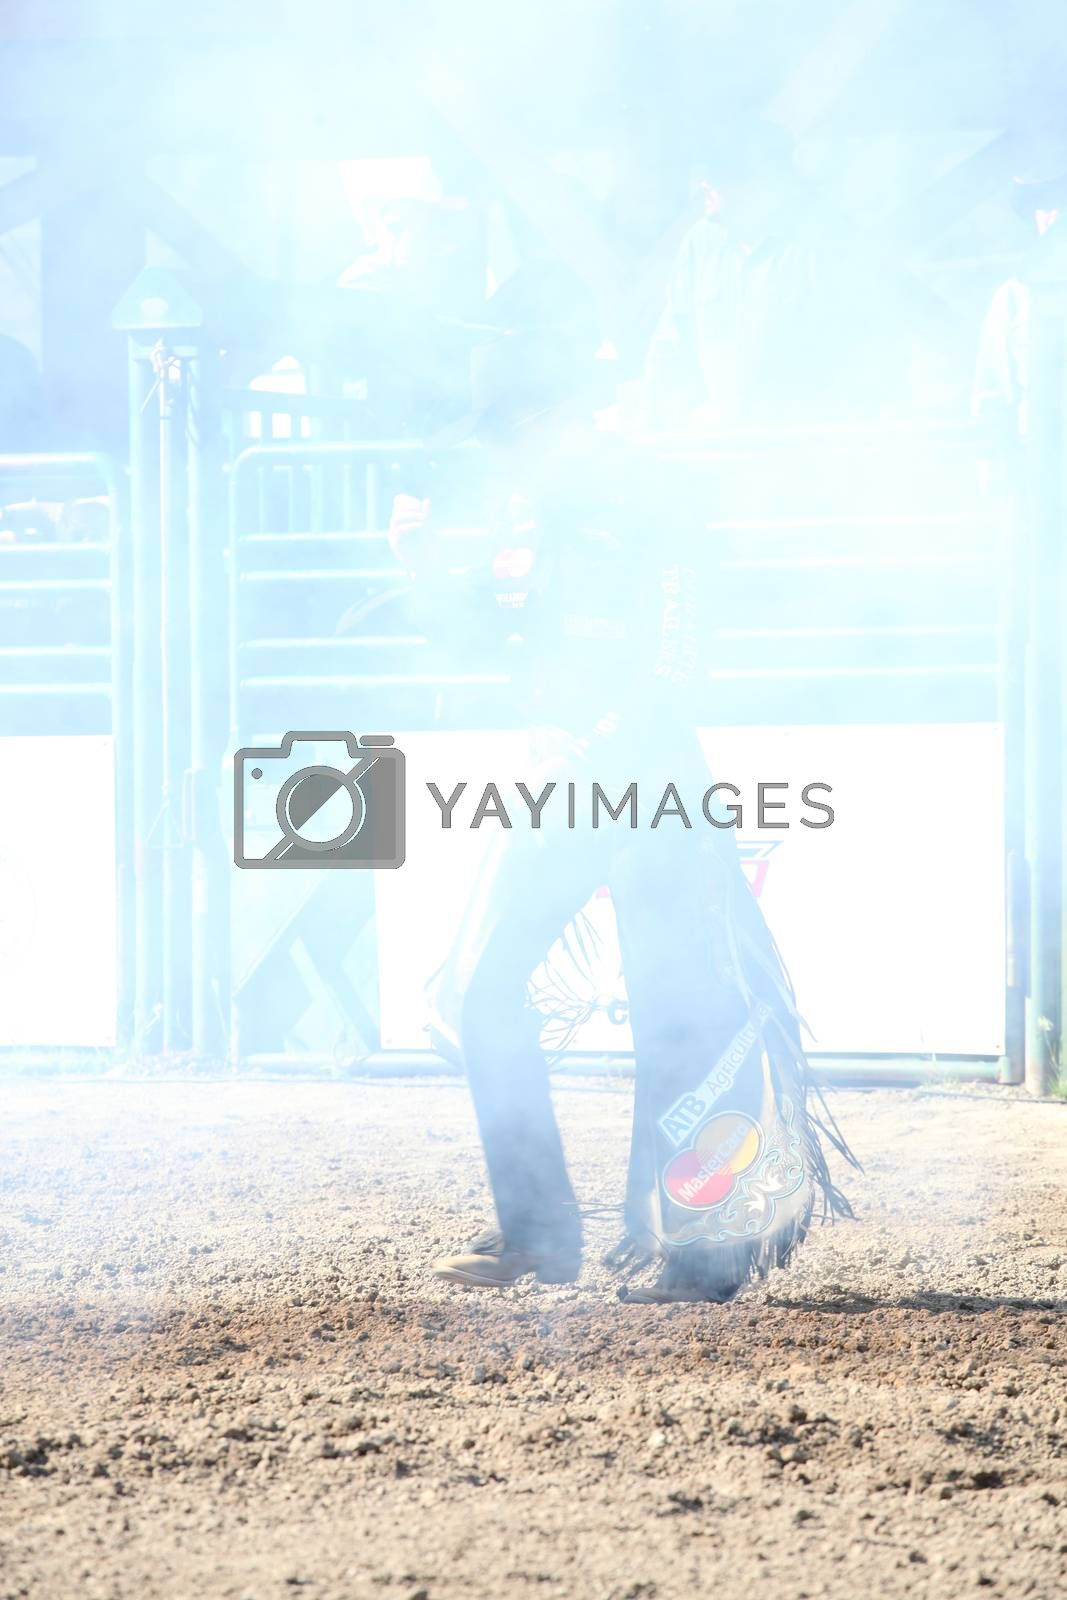 MERRITT, B.C. CANADA - May 30, 2015: Bull rider the opening ceremony of The 3rd Annual Ty Pozzobon Invitational PBR Event.